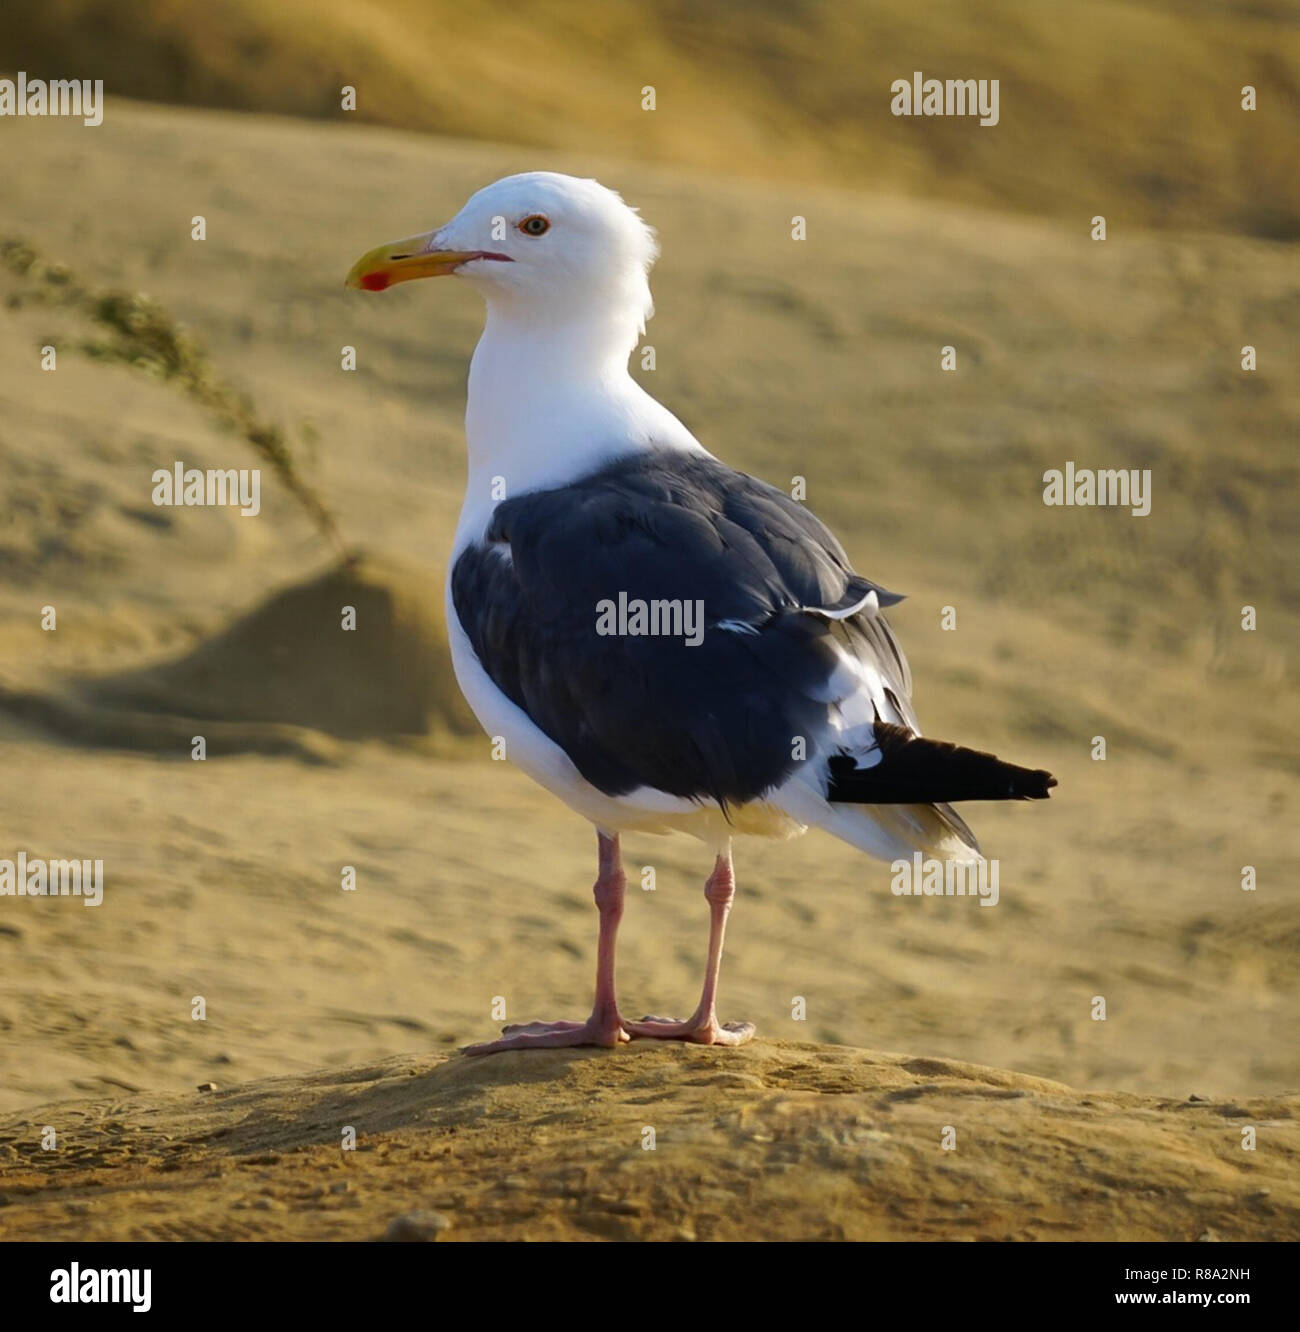 A white and black seagull standing on the sand Stock Photo